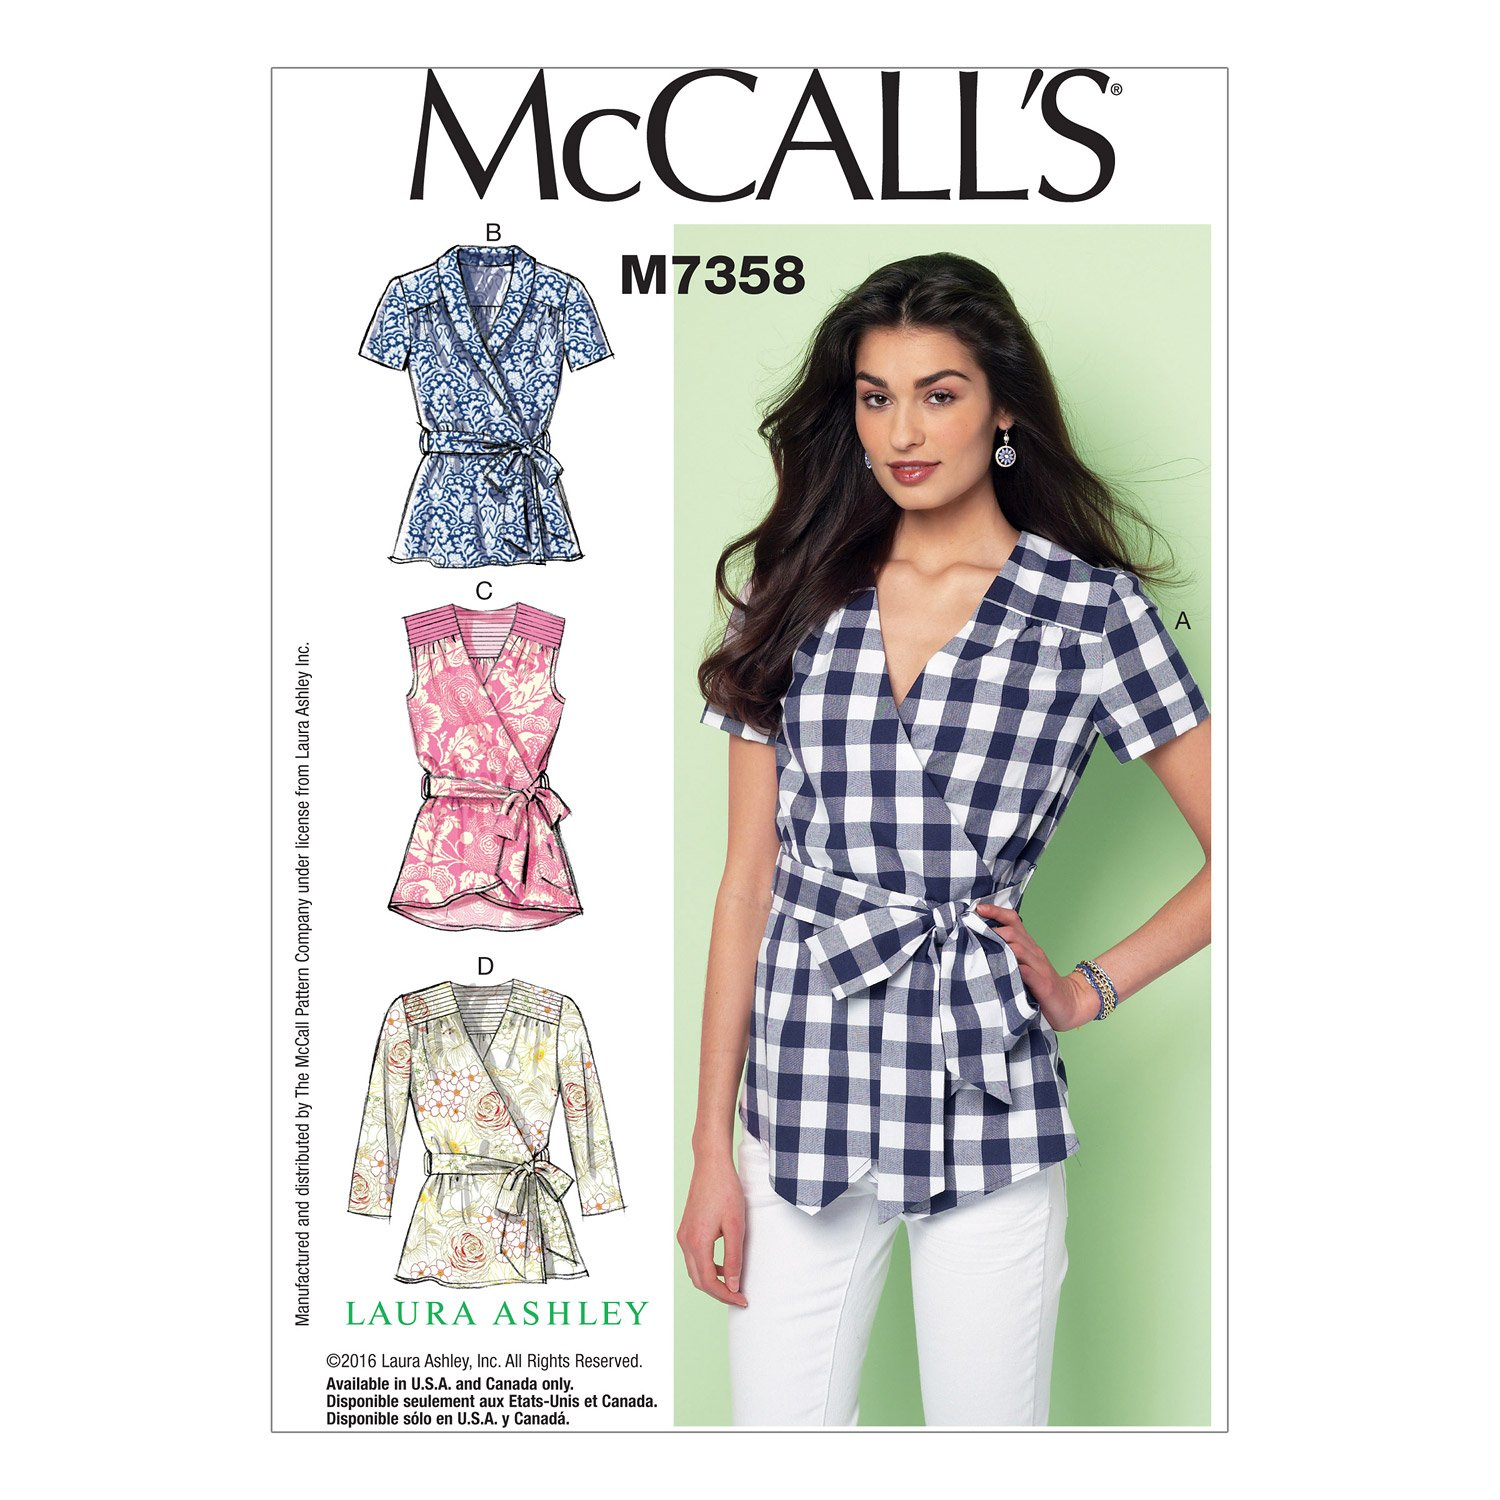 McCalls Patterns M7358 Misses Gathered and Yoked Tops and Belt Size A5 6-8-10-12-14